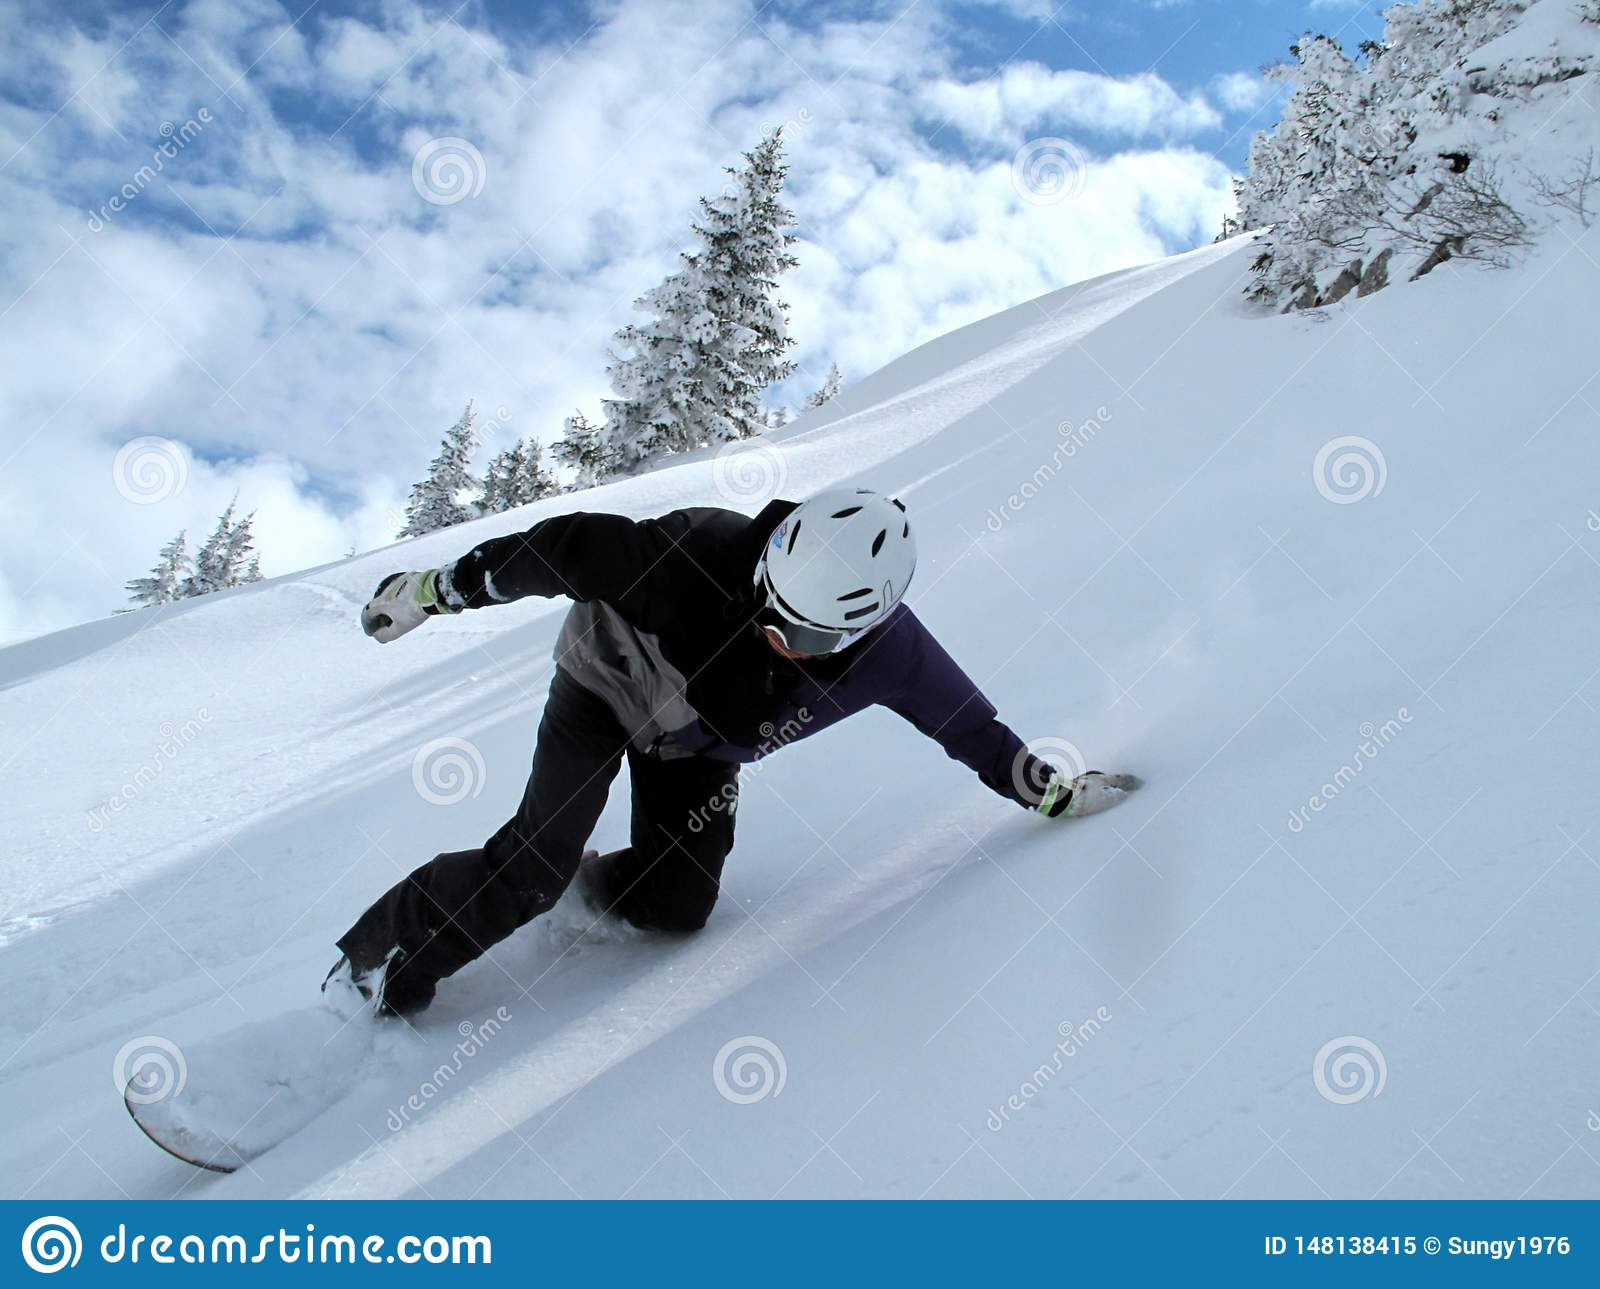 Mountain with clouds and snow, snowboarder in full speed